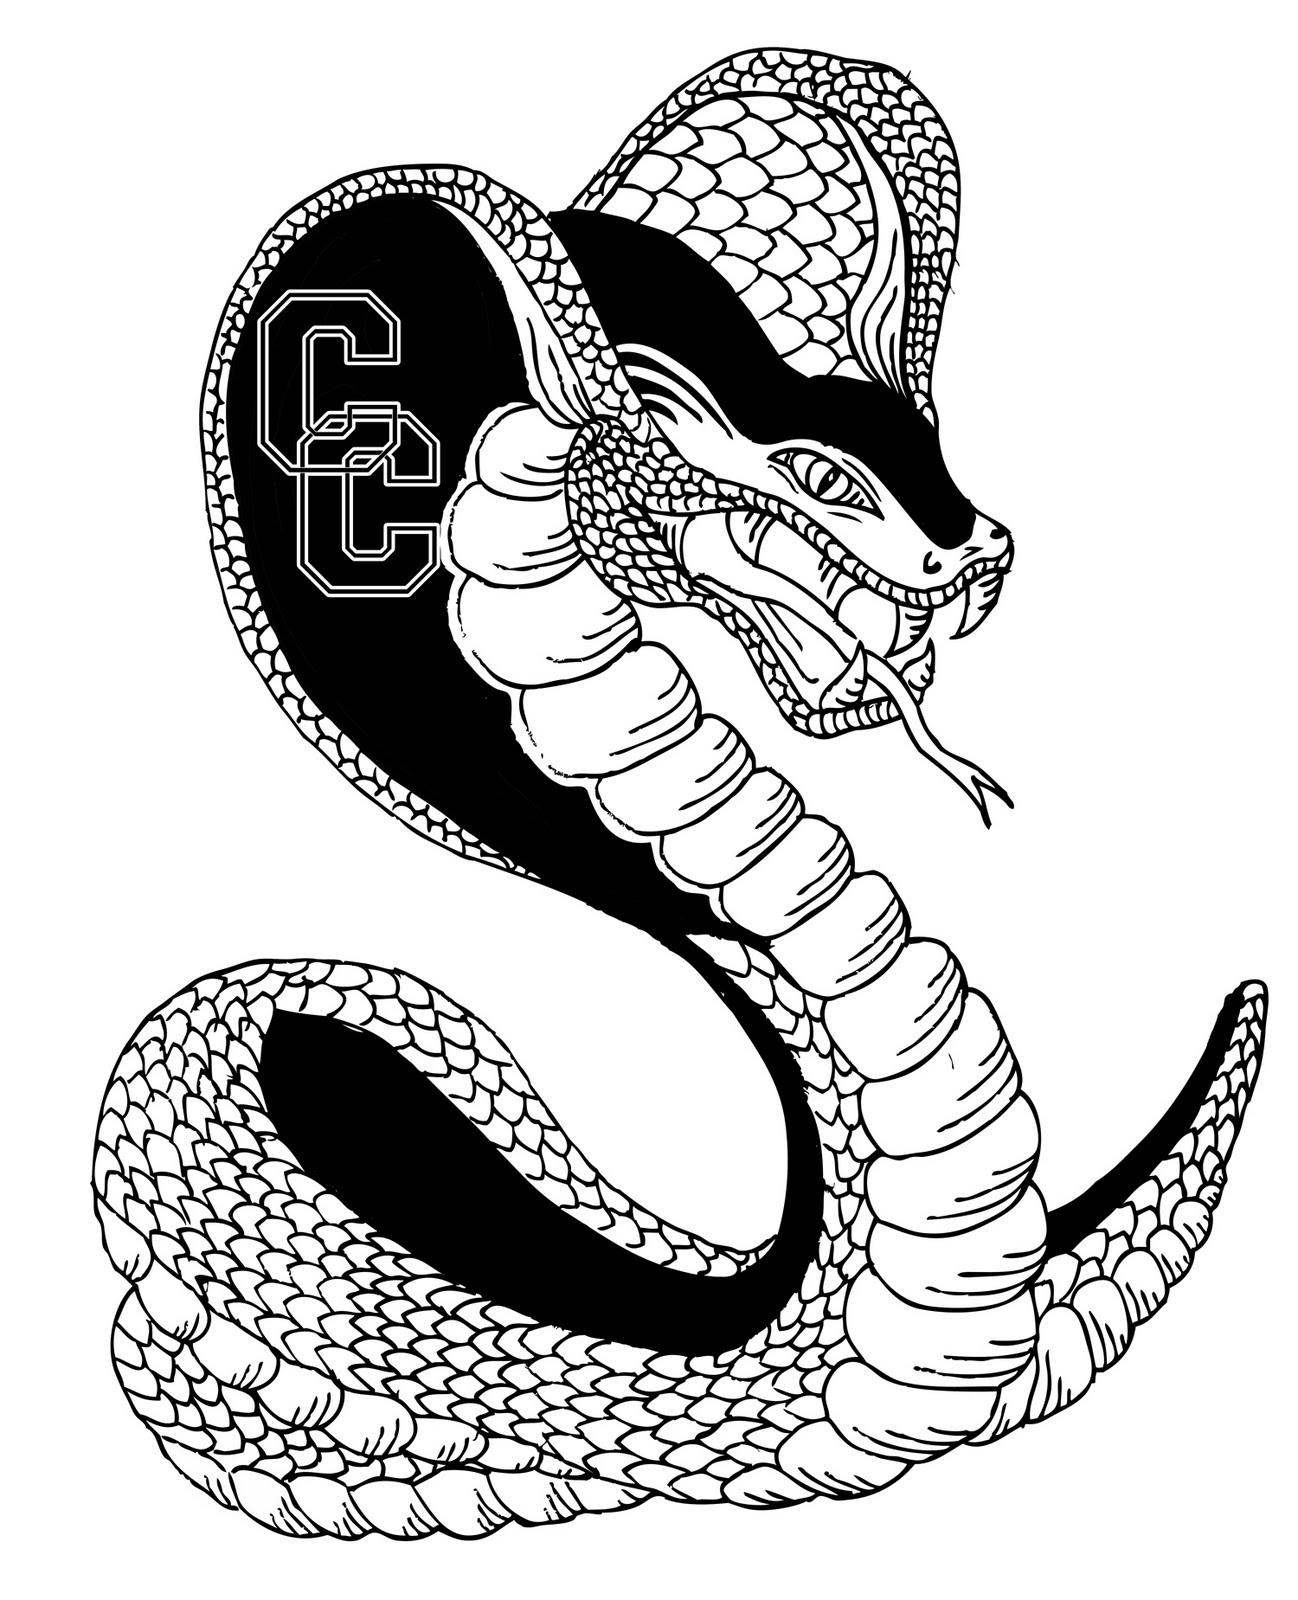 King Cobra Snake Tattoo Design